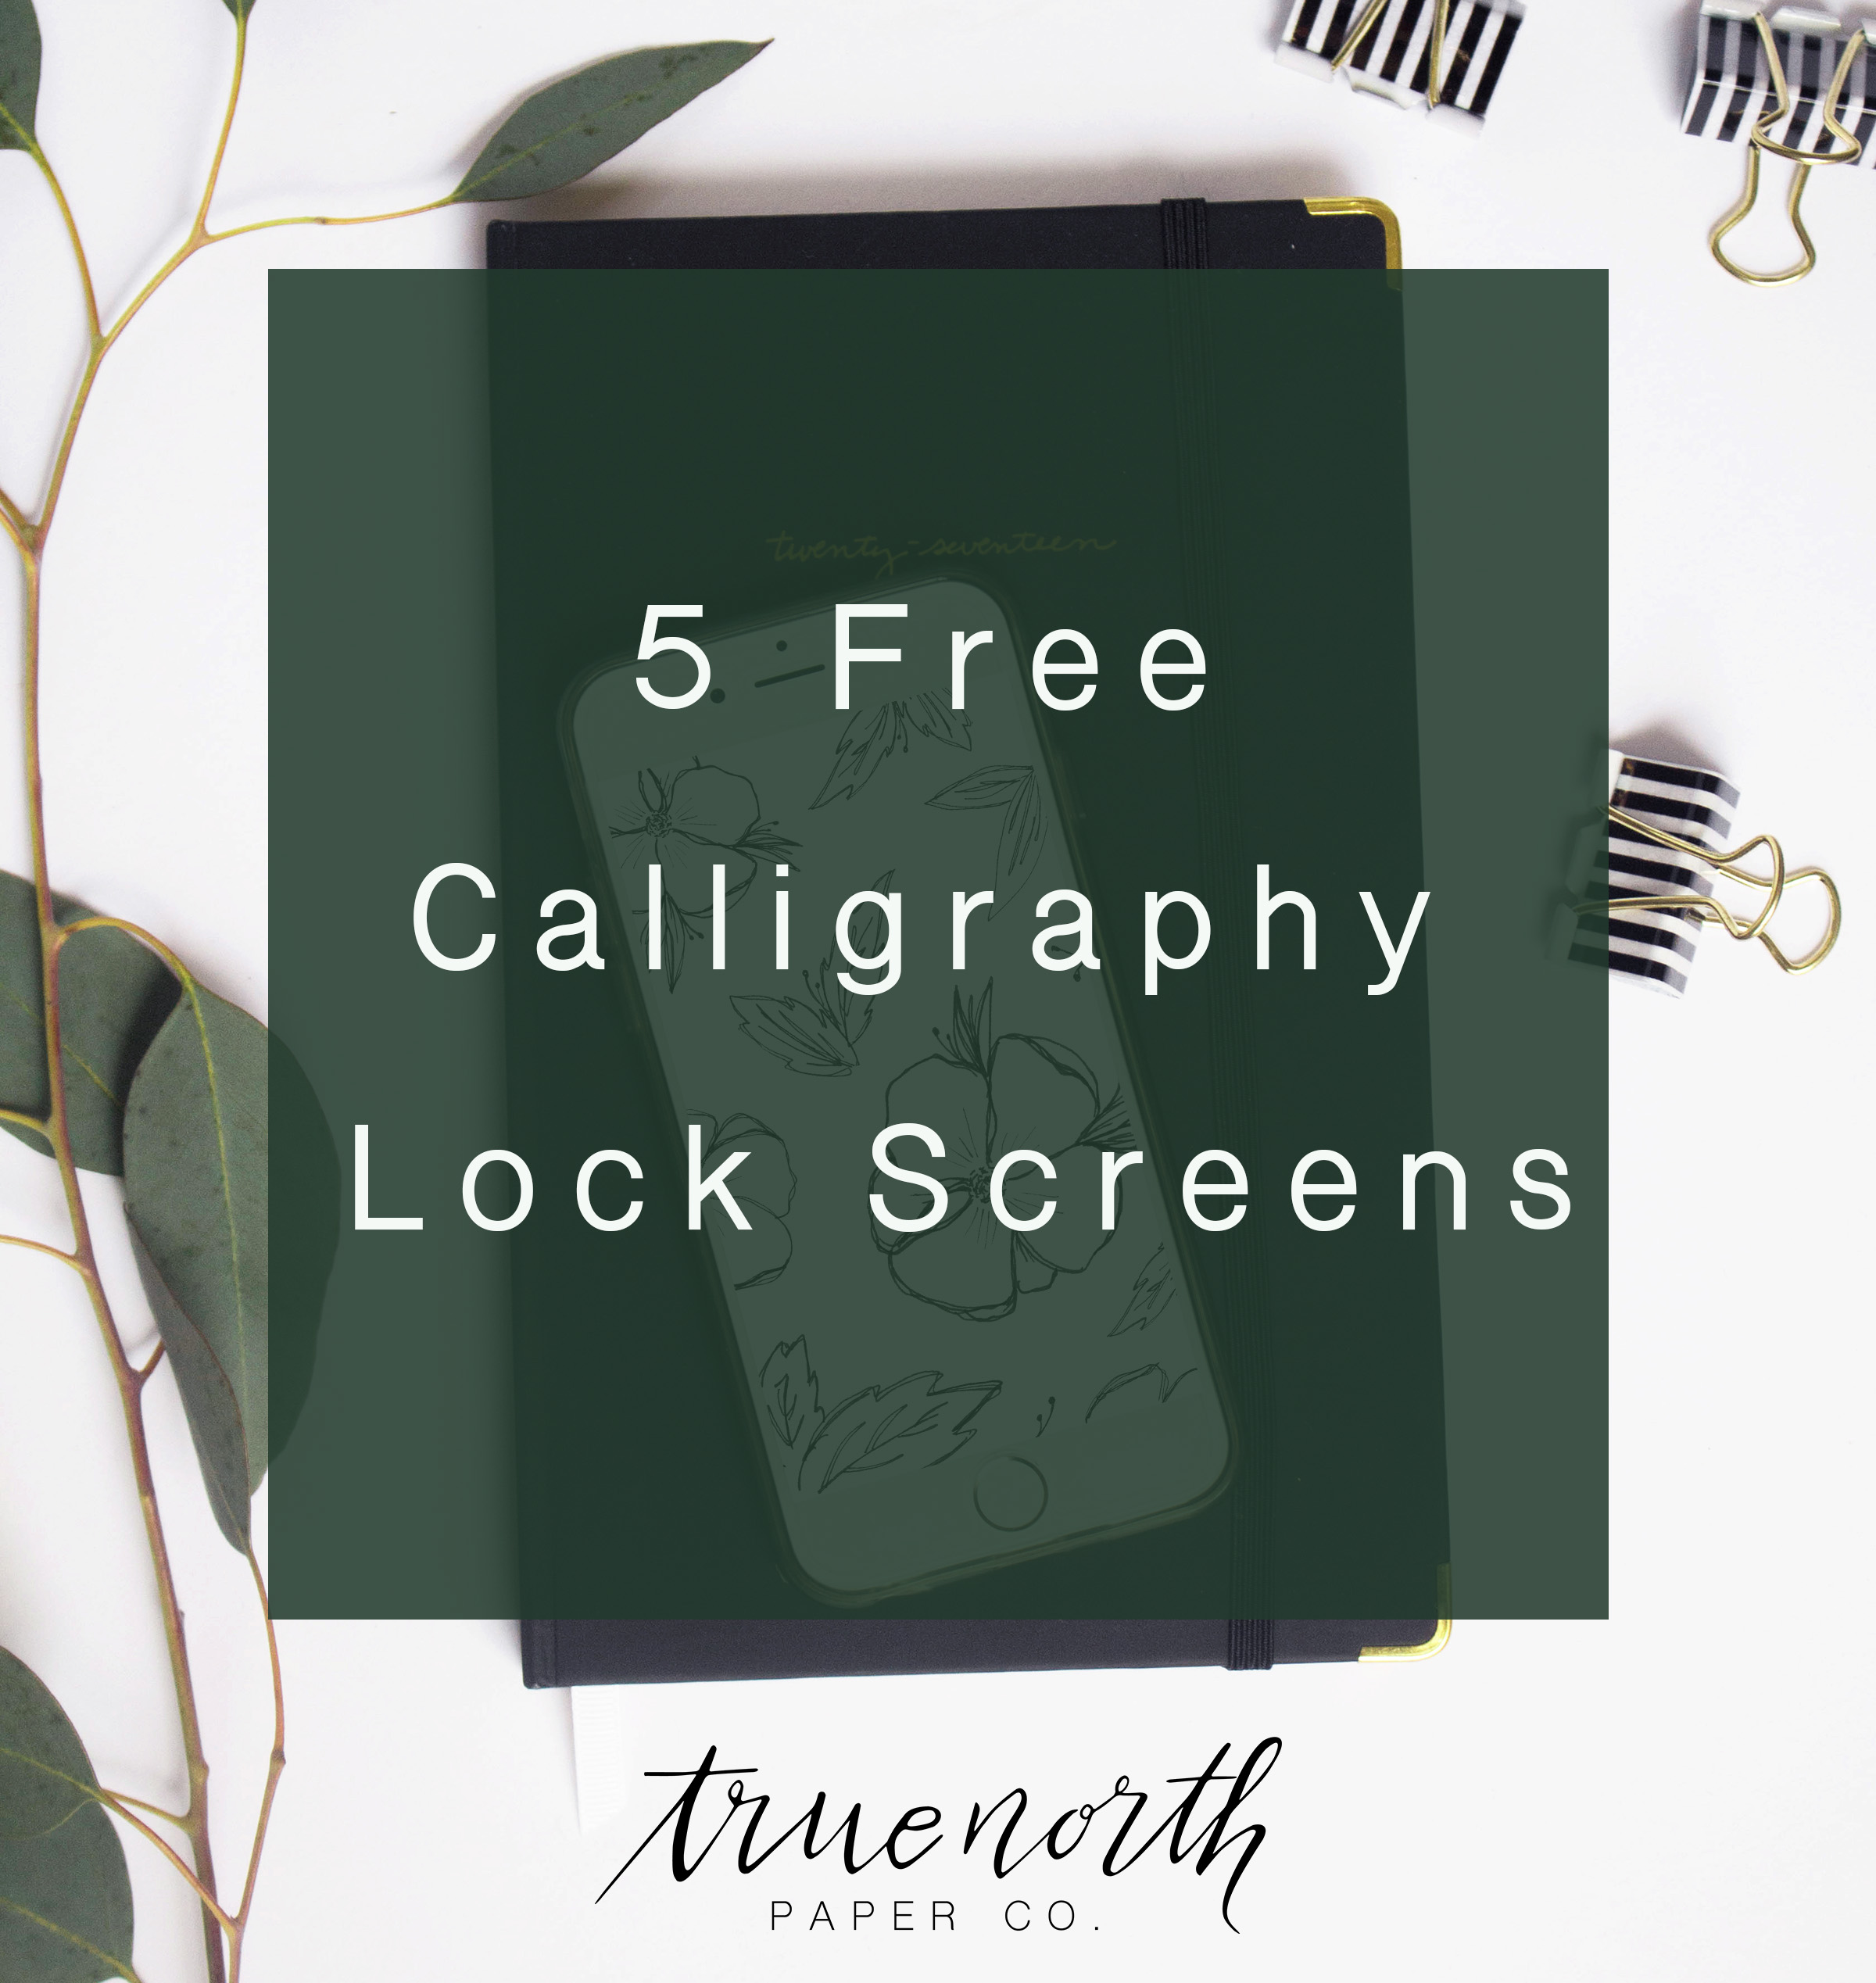 5 Free Calligraphy Lock Screens for Spring - True North Paper Co.